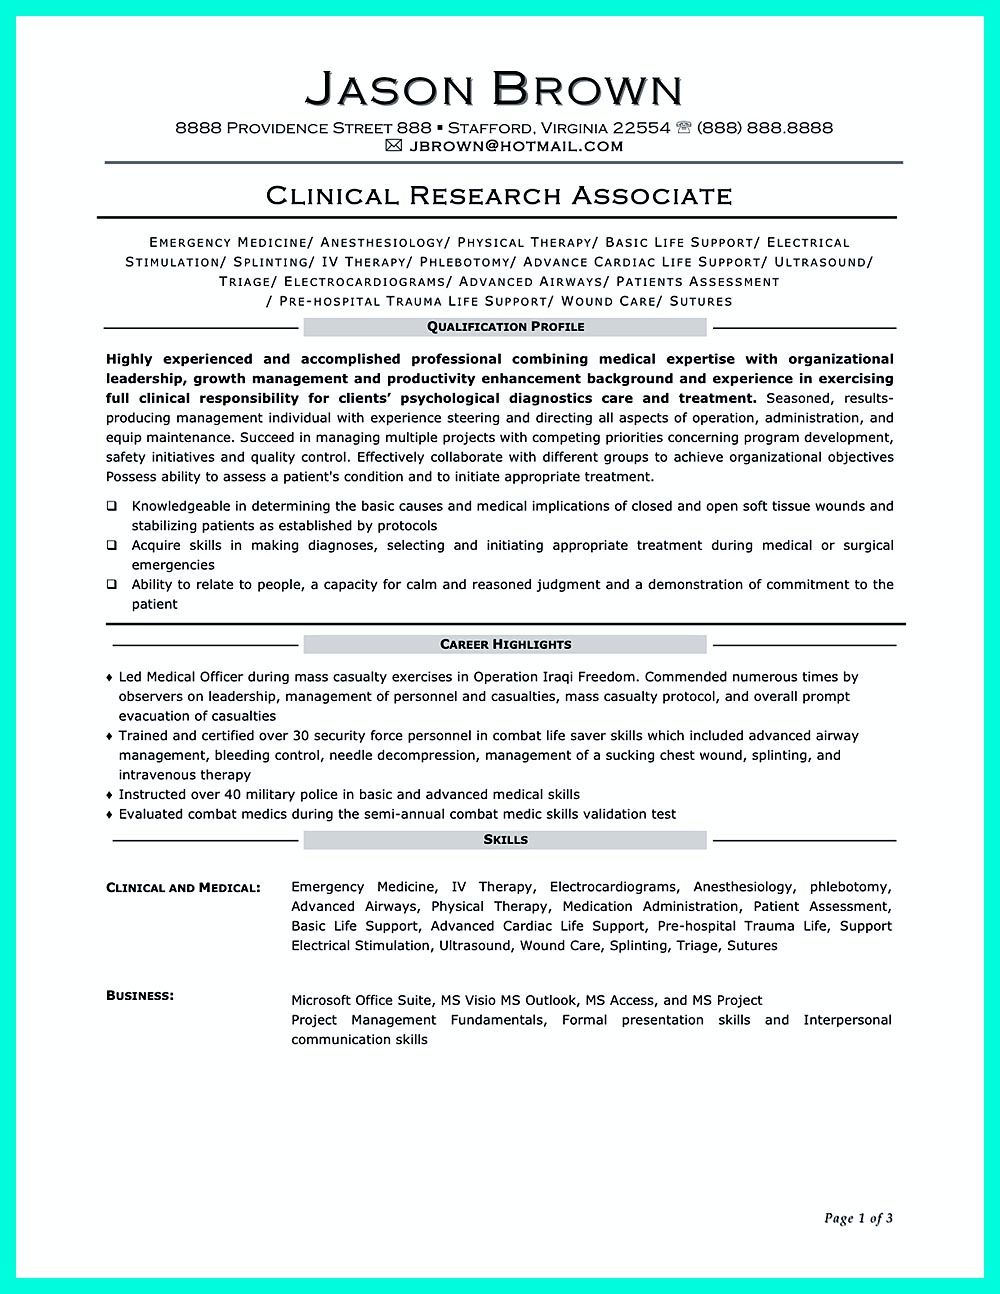 clinical research associate resume objectives are needed to clinical research associate resume objectives are needed to convince your future company that your goal and